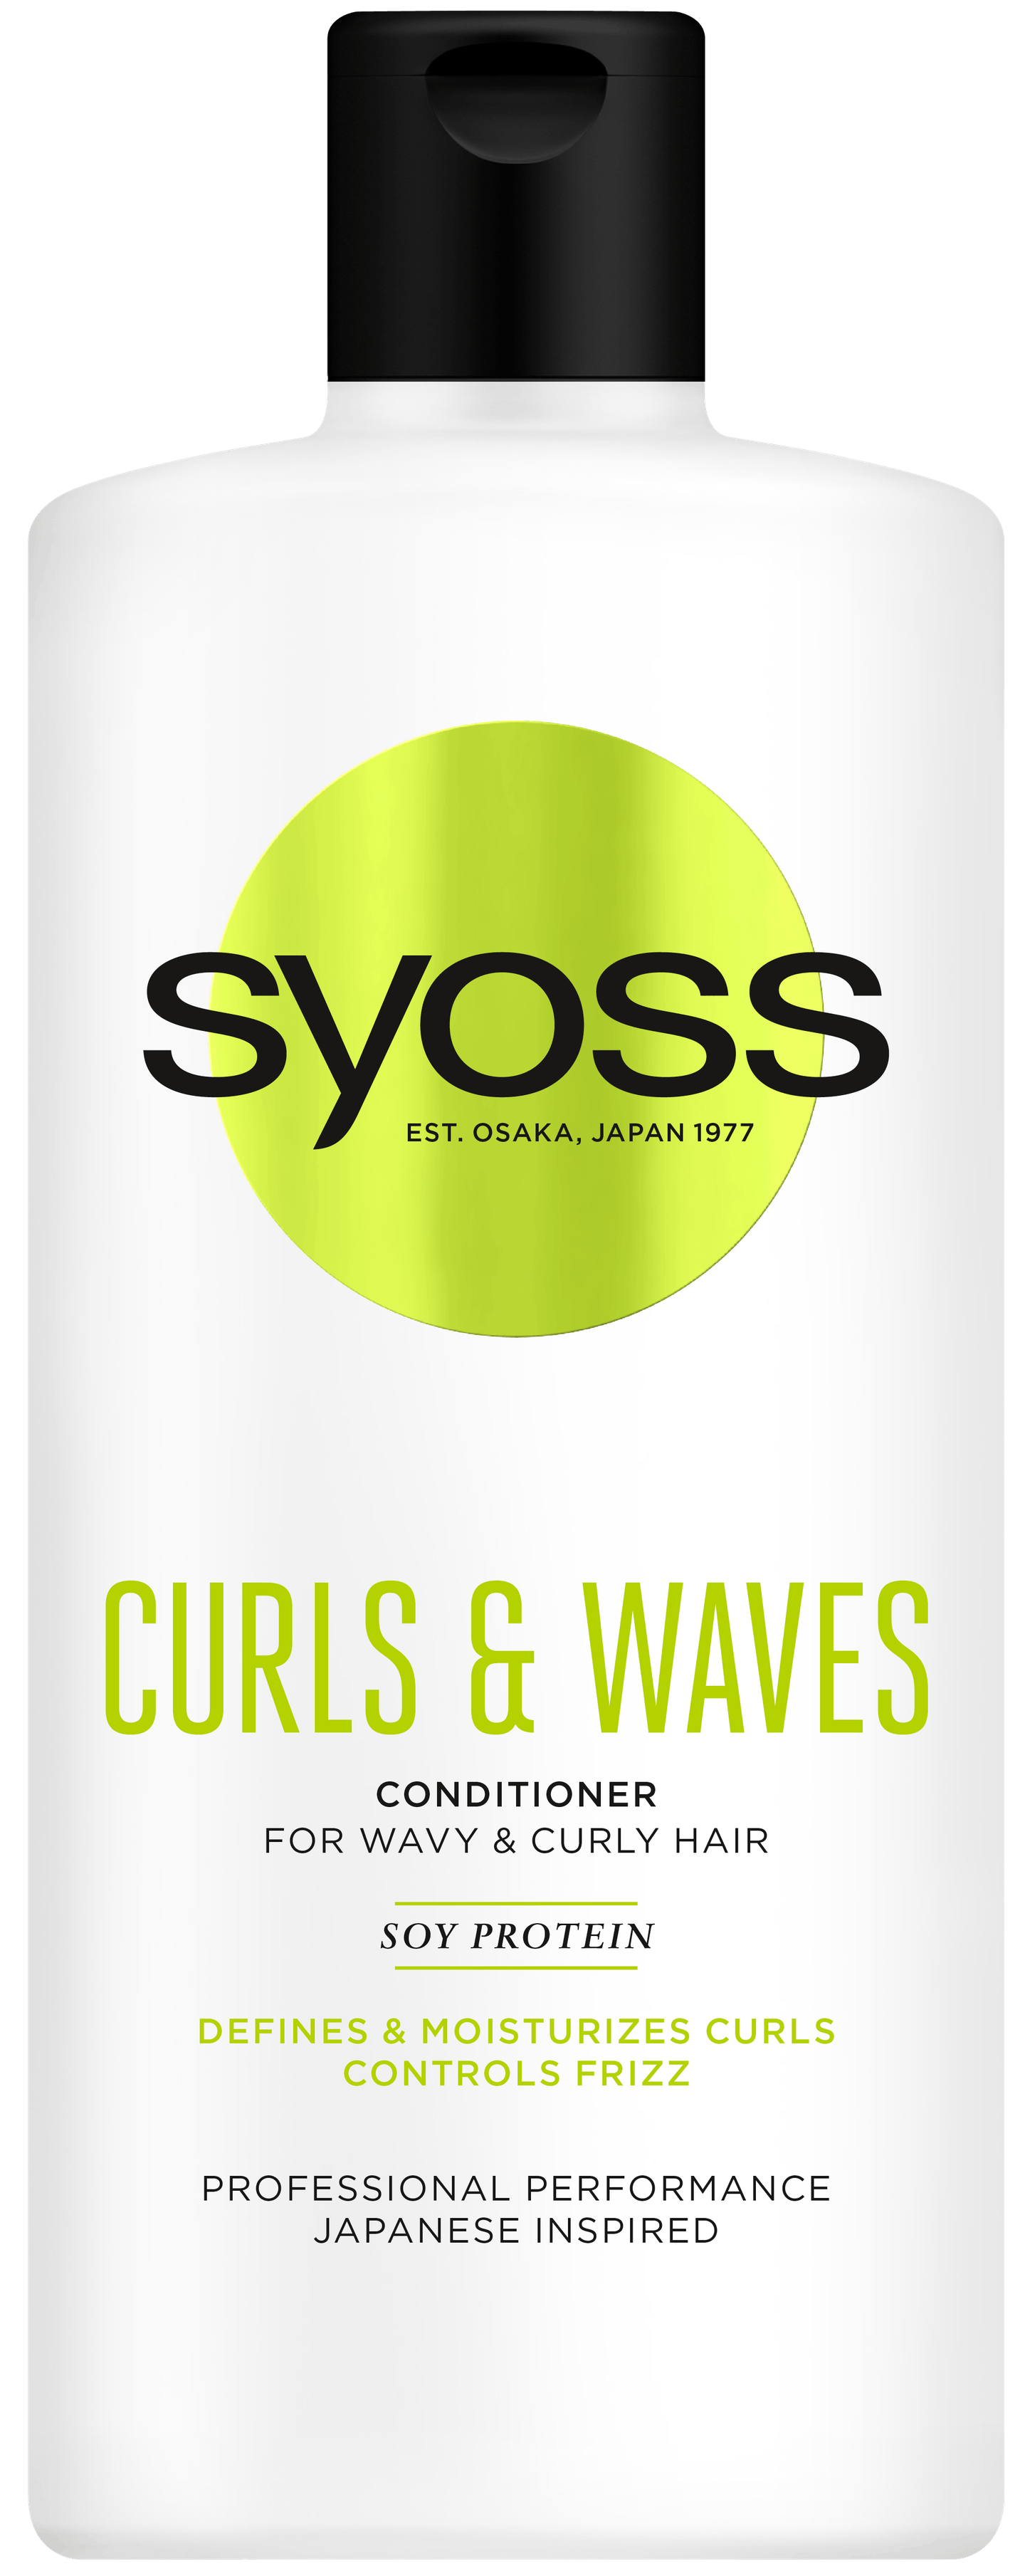 Regenerator Syoss Curls & Waves